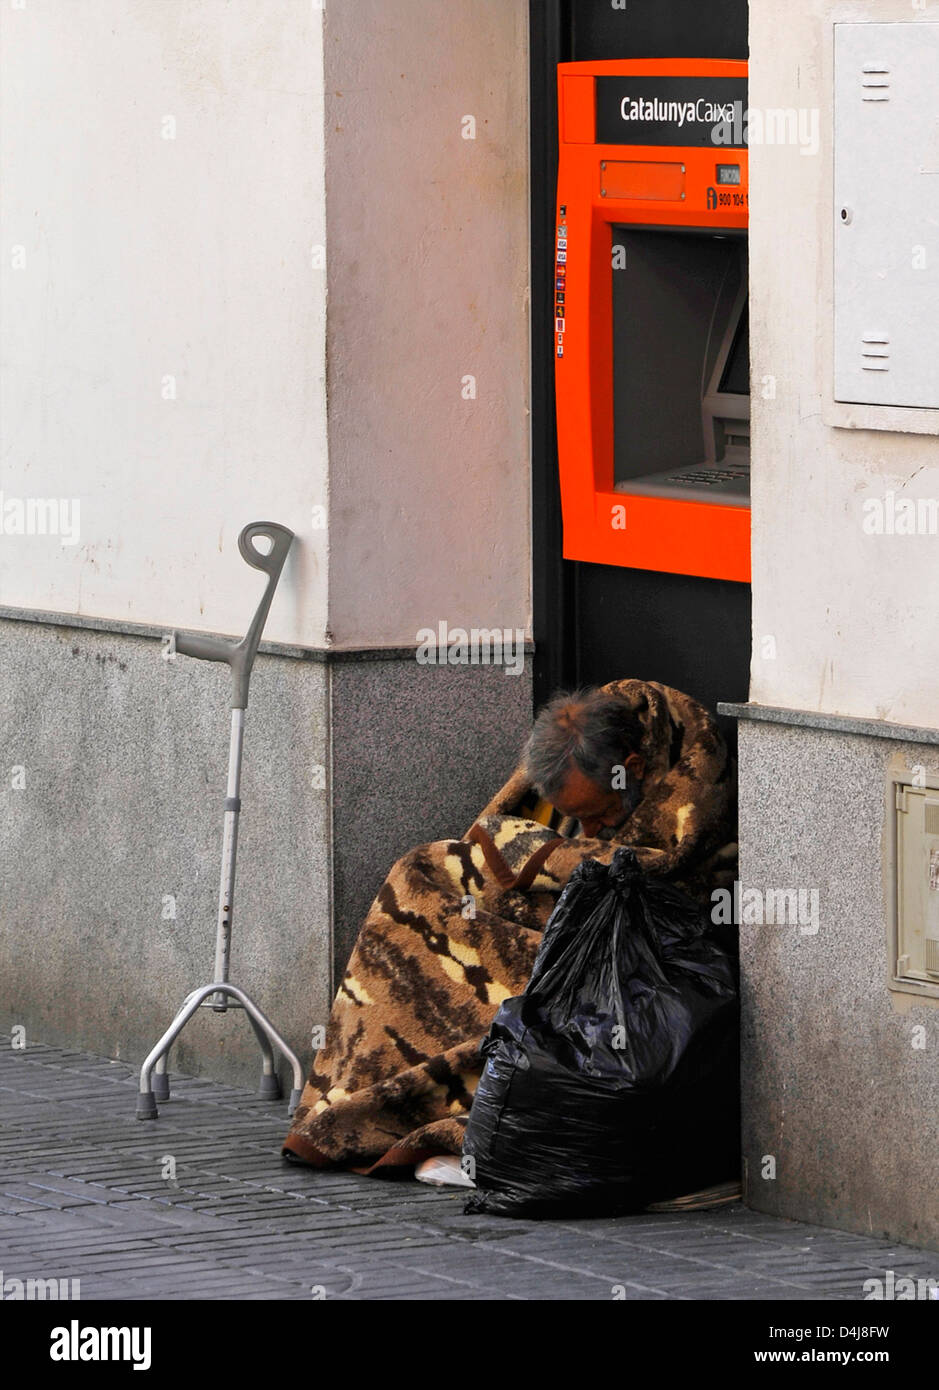 homeless Man wrapped in a blanket sits in front of an automatic cashier of the spanish bank 'CatalunyaCaixa' - Stock Image